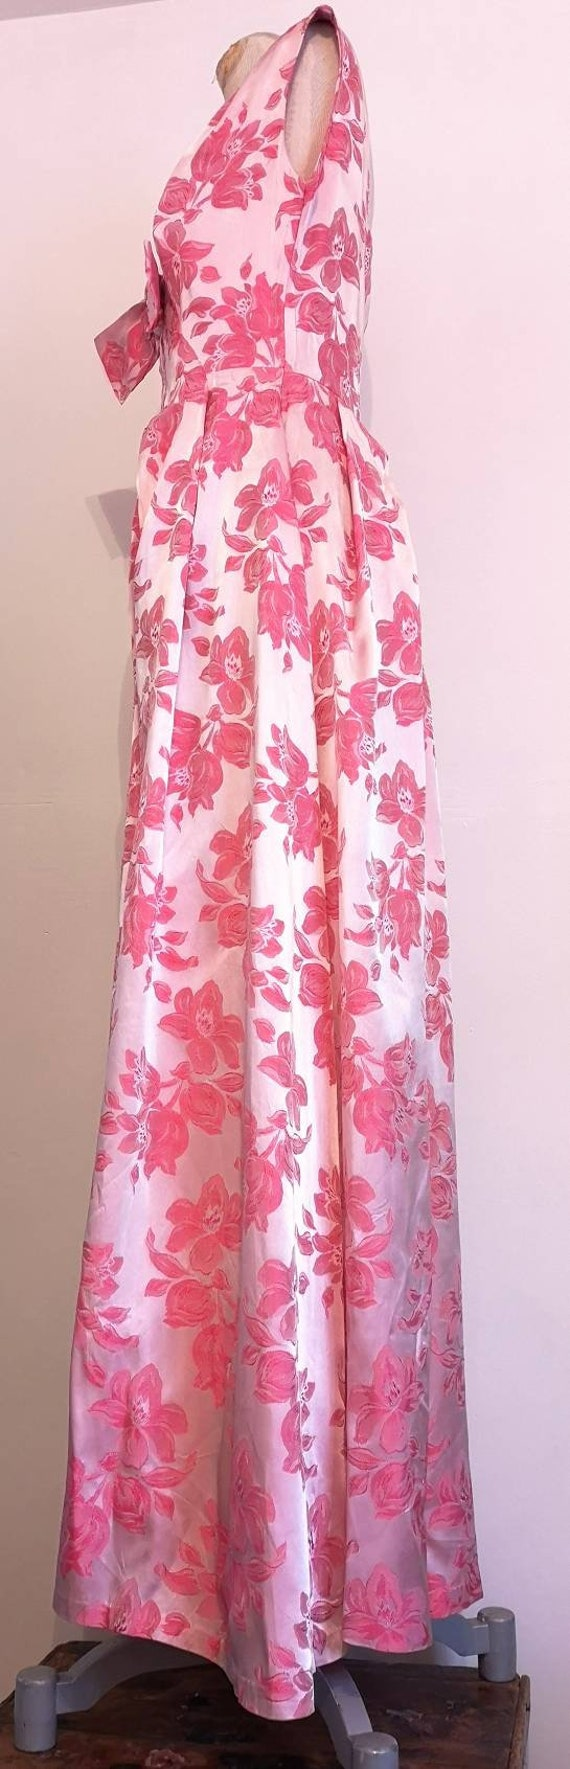 1950s Long Pink Brocade Dress with Bow Detail - image 3